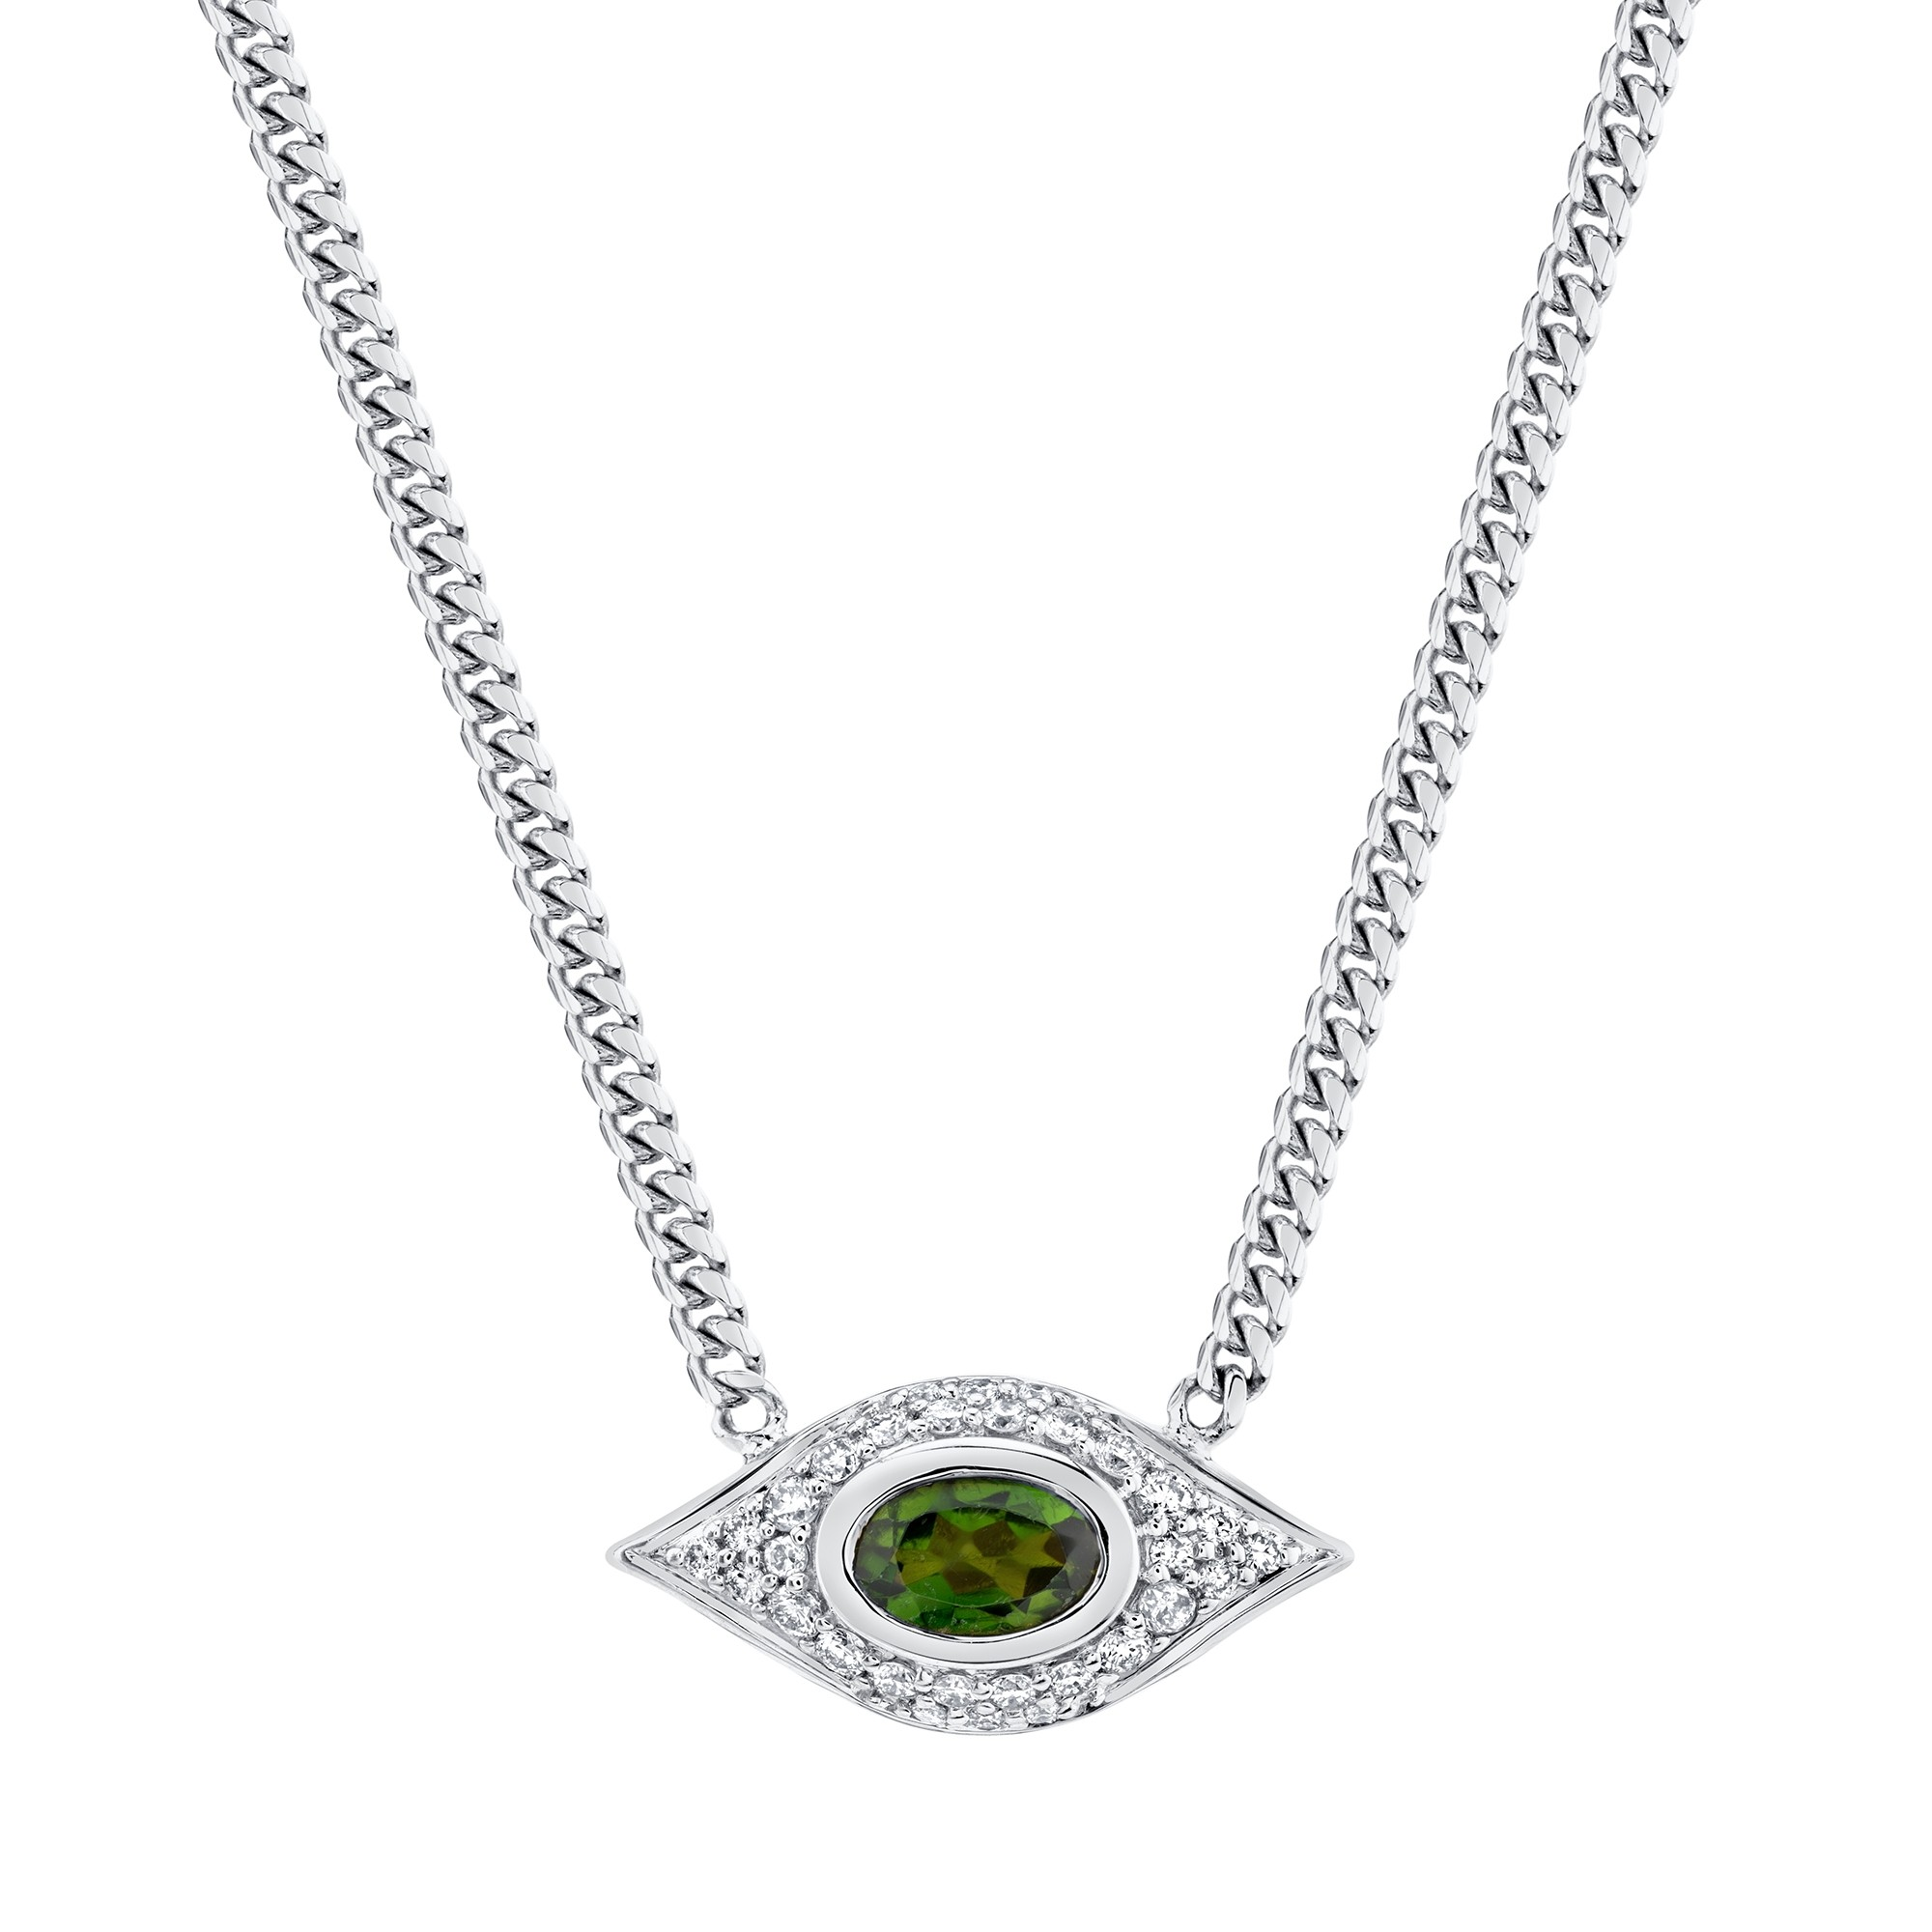 14k White Gold Diamond Oval Green Tourmaline Evil Eye Necklace